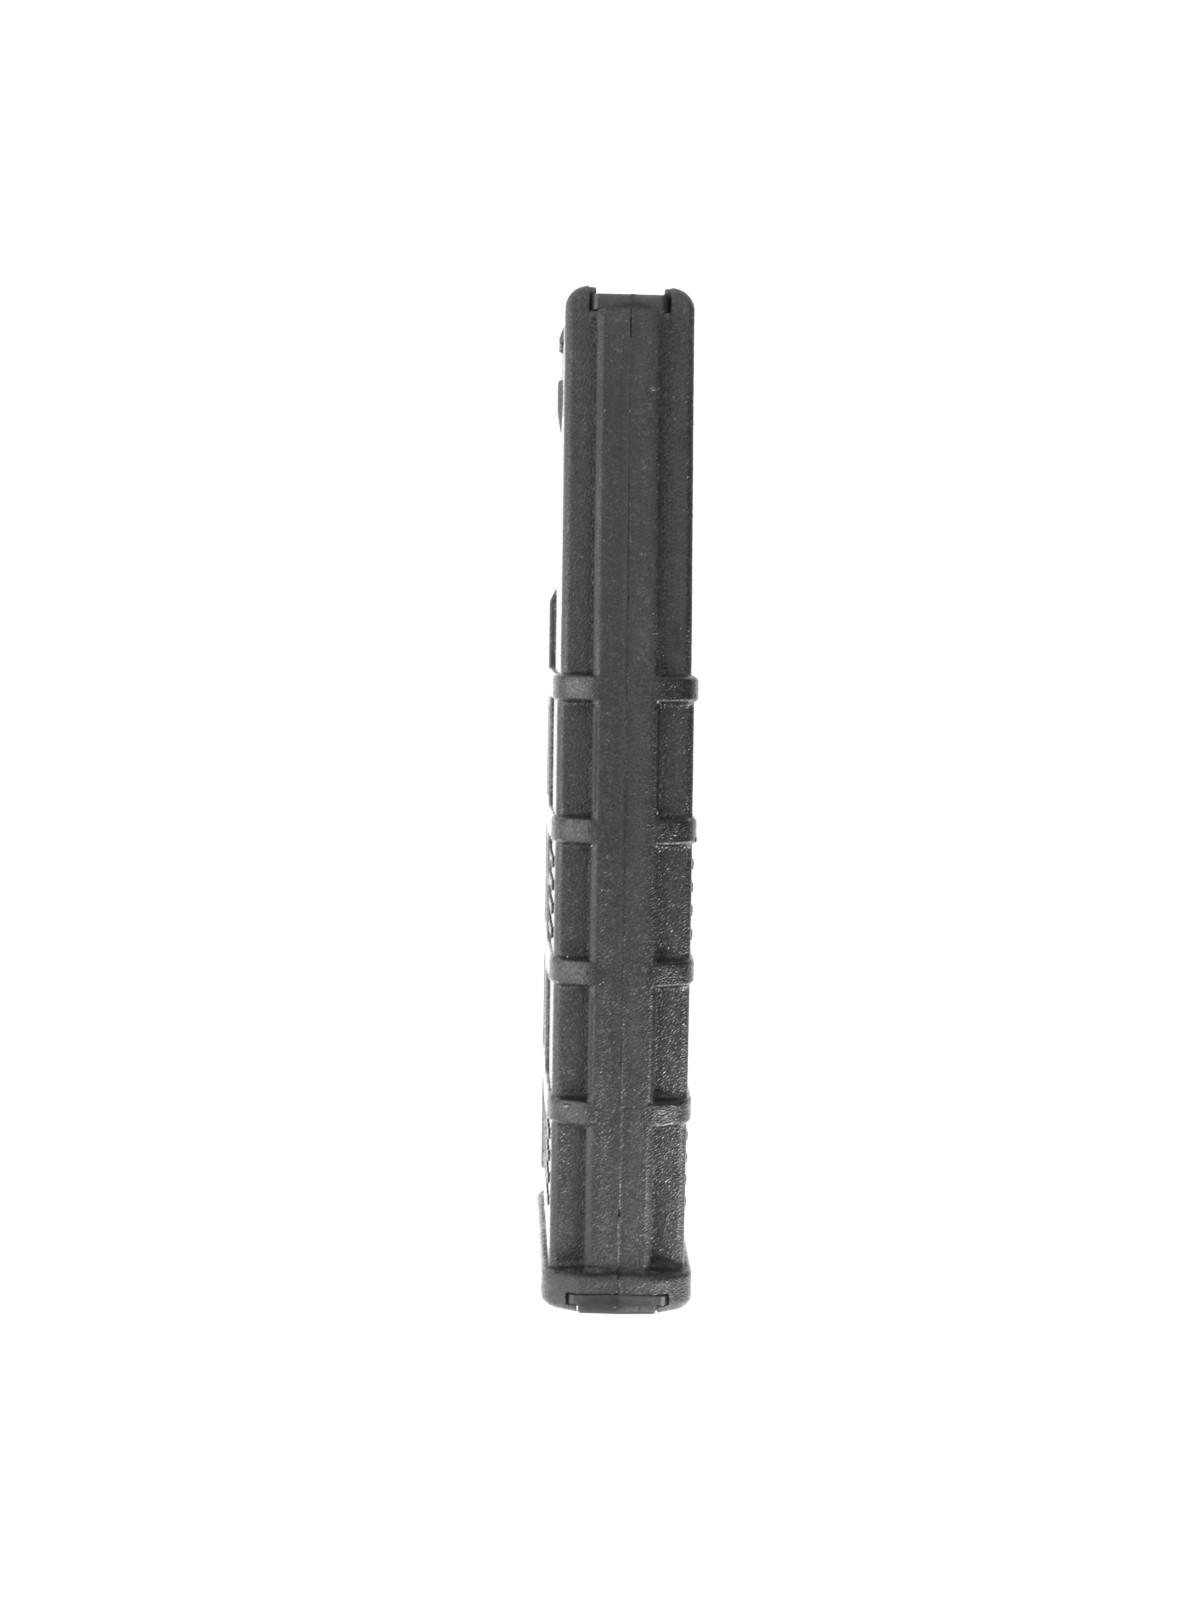 Airsoft Systems 85rd Mid-Cap M4 / M16 Magazines - 5-Pack in Black